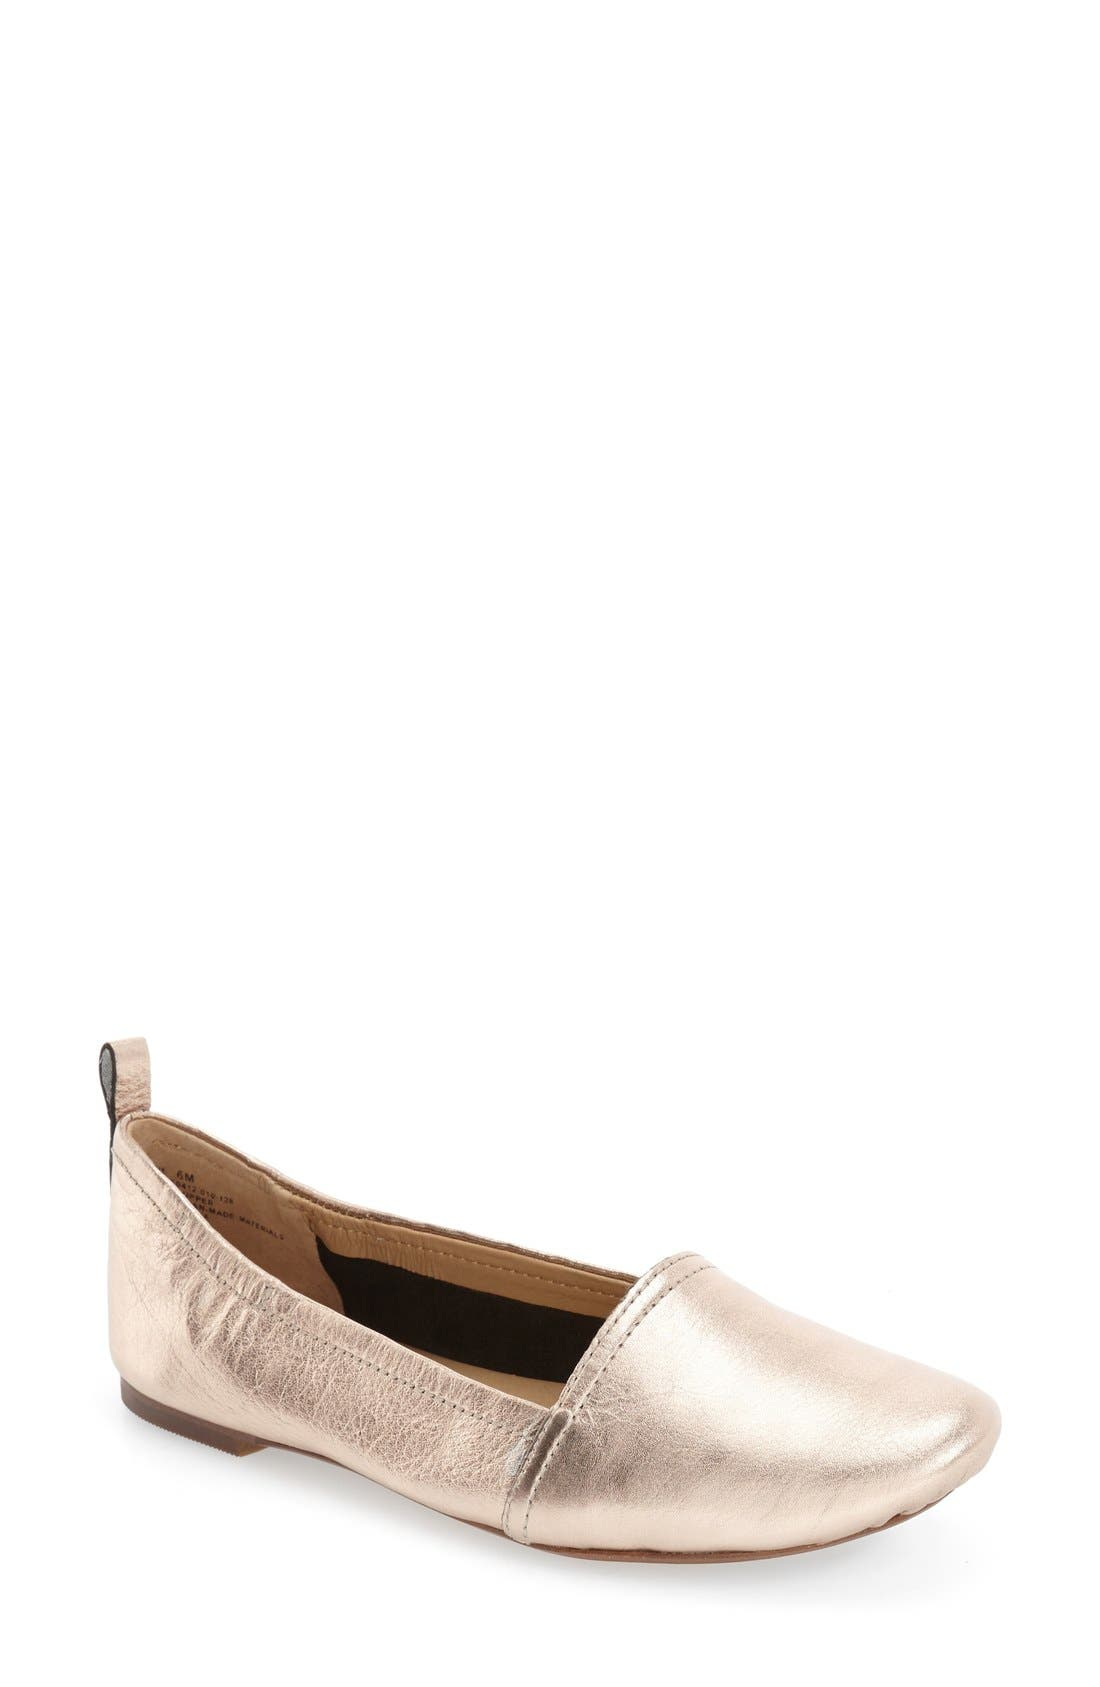 'Bettie' Leather Flat,                             Main thumbnail 8, color,